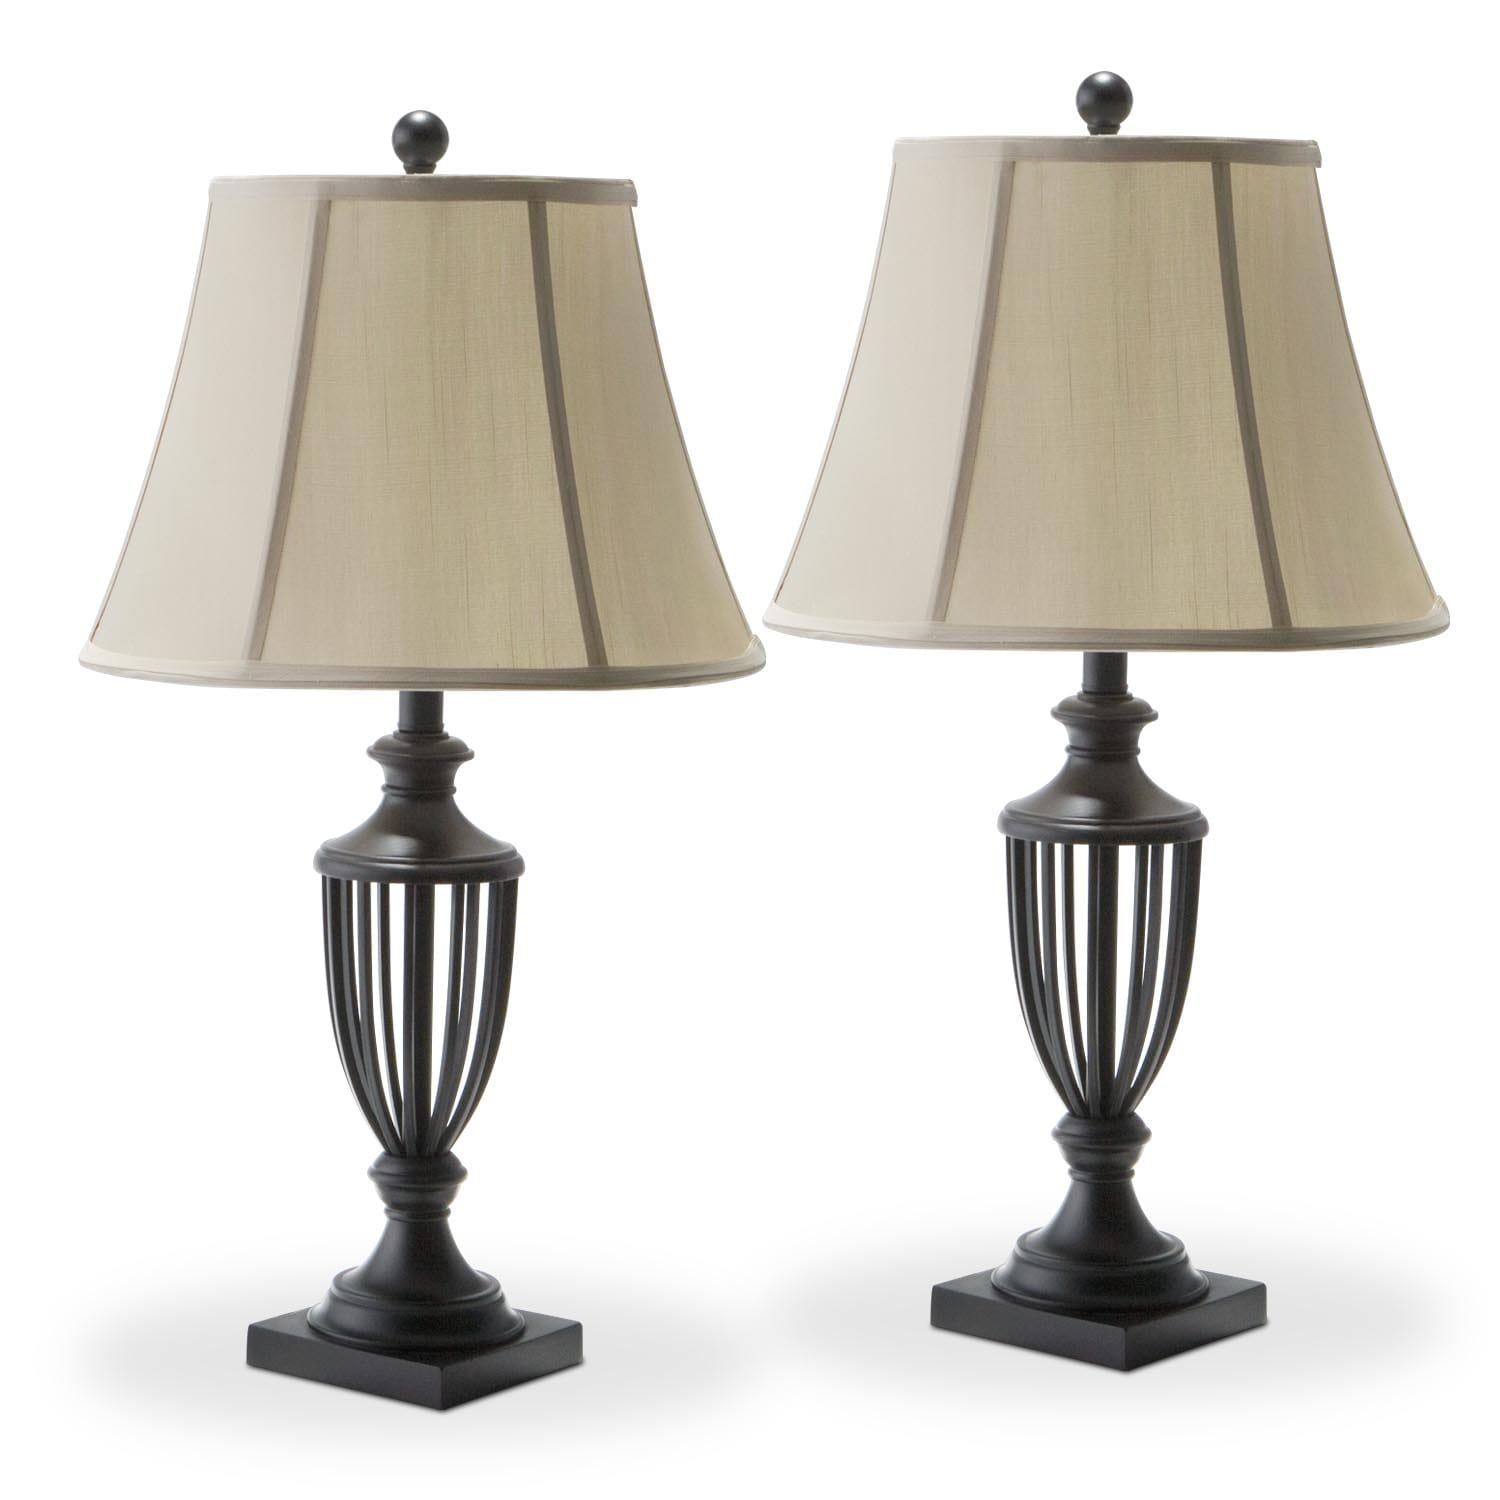 Mason 2-Pack Table Lamp Set